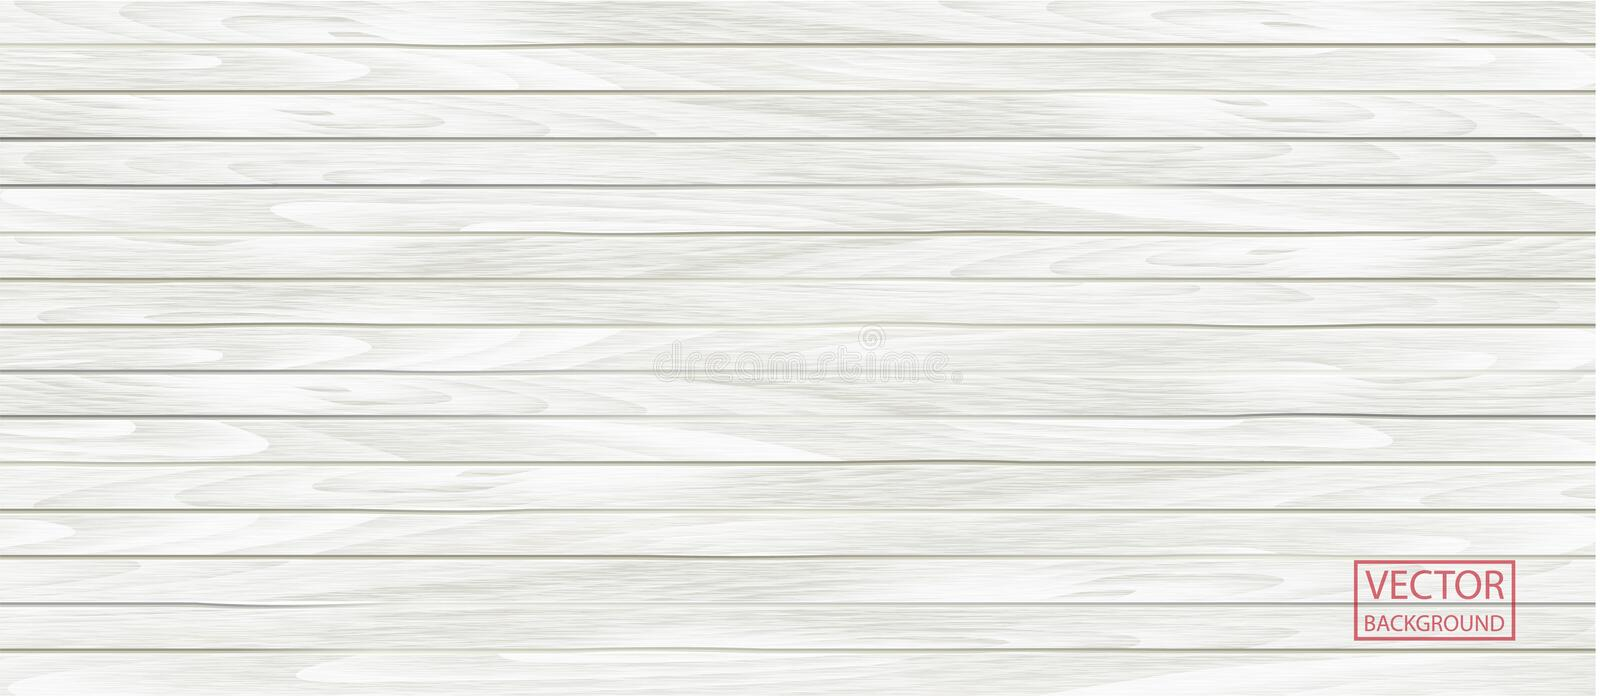 Wood vector white banner in vintage style. Grunge pattern texture background royalty free illustration